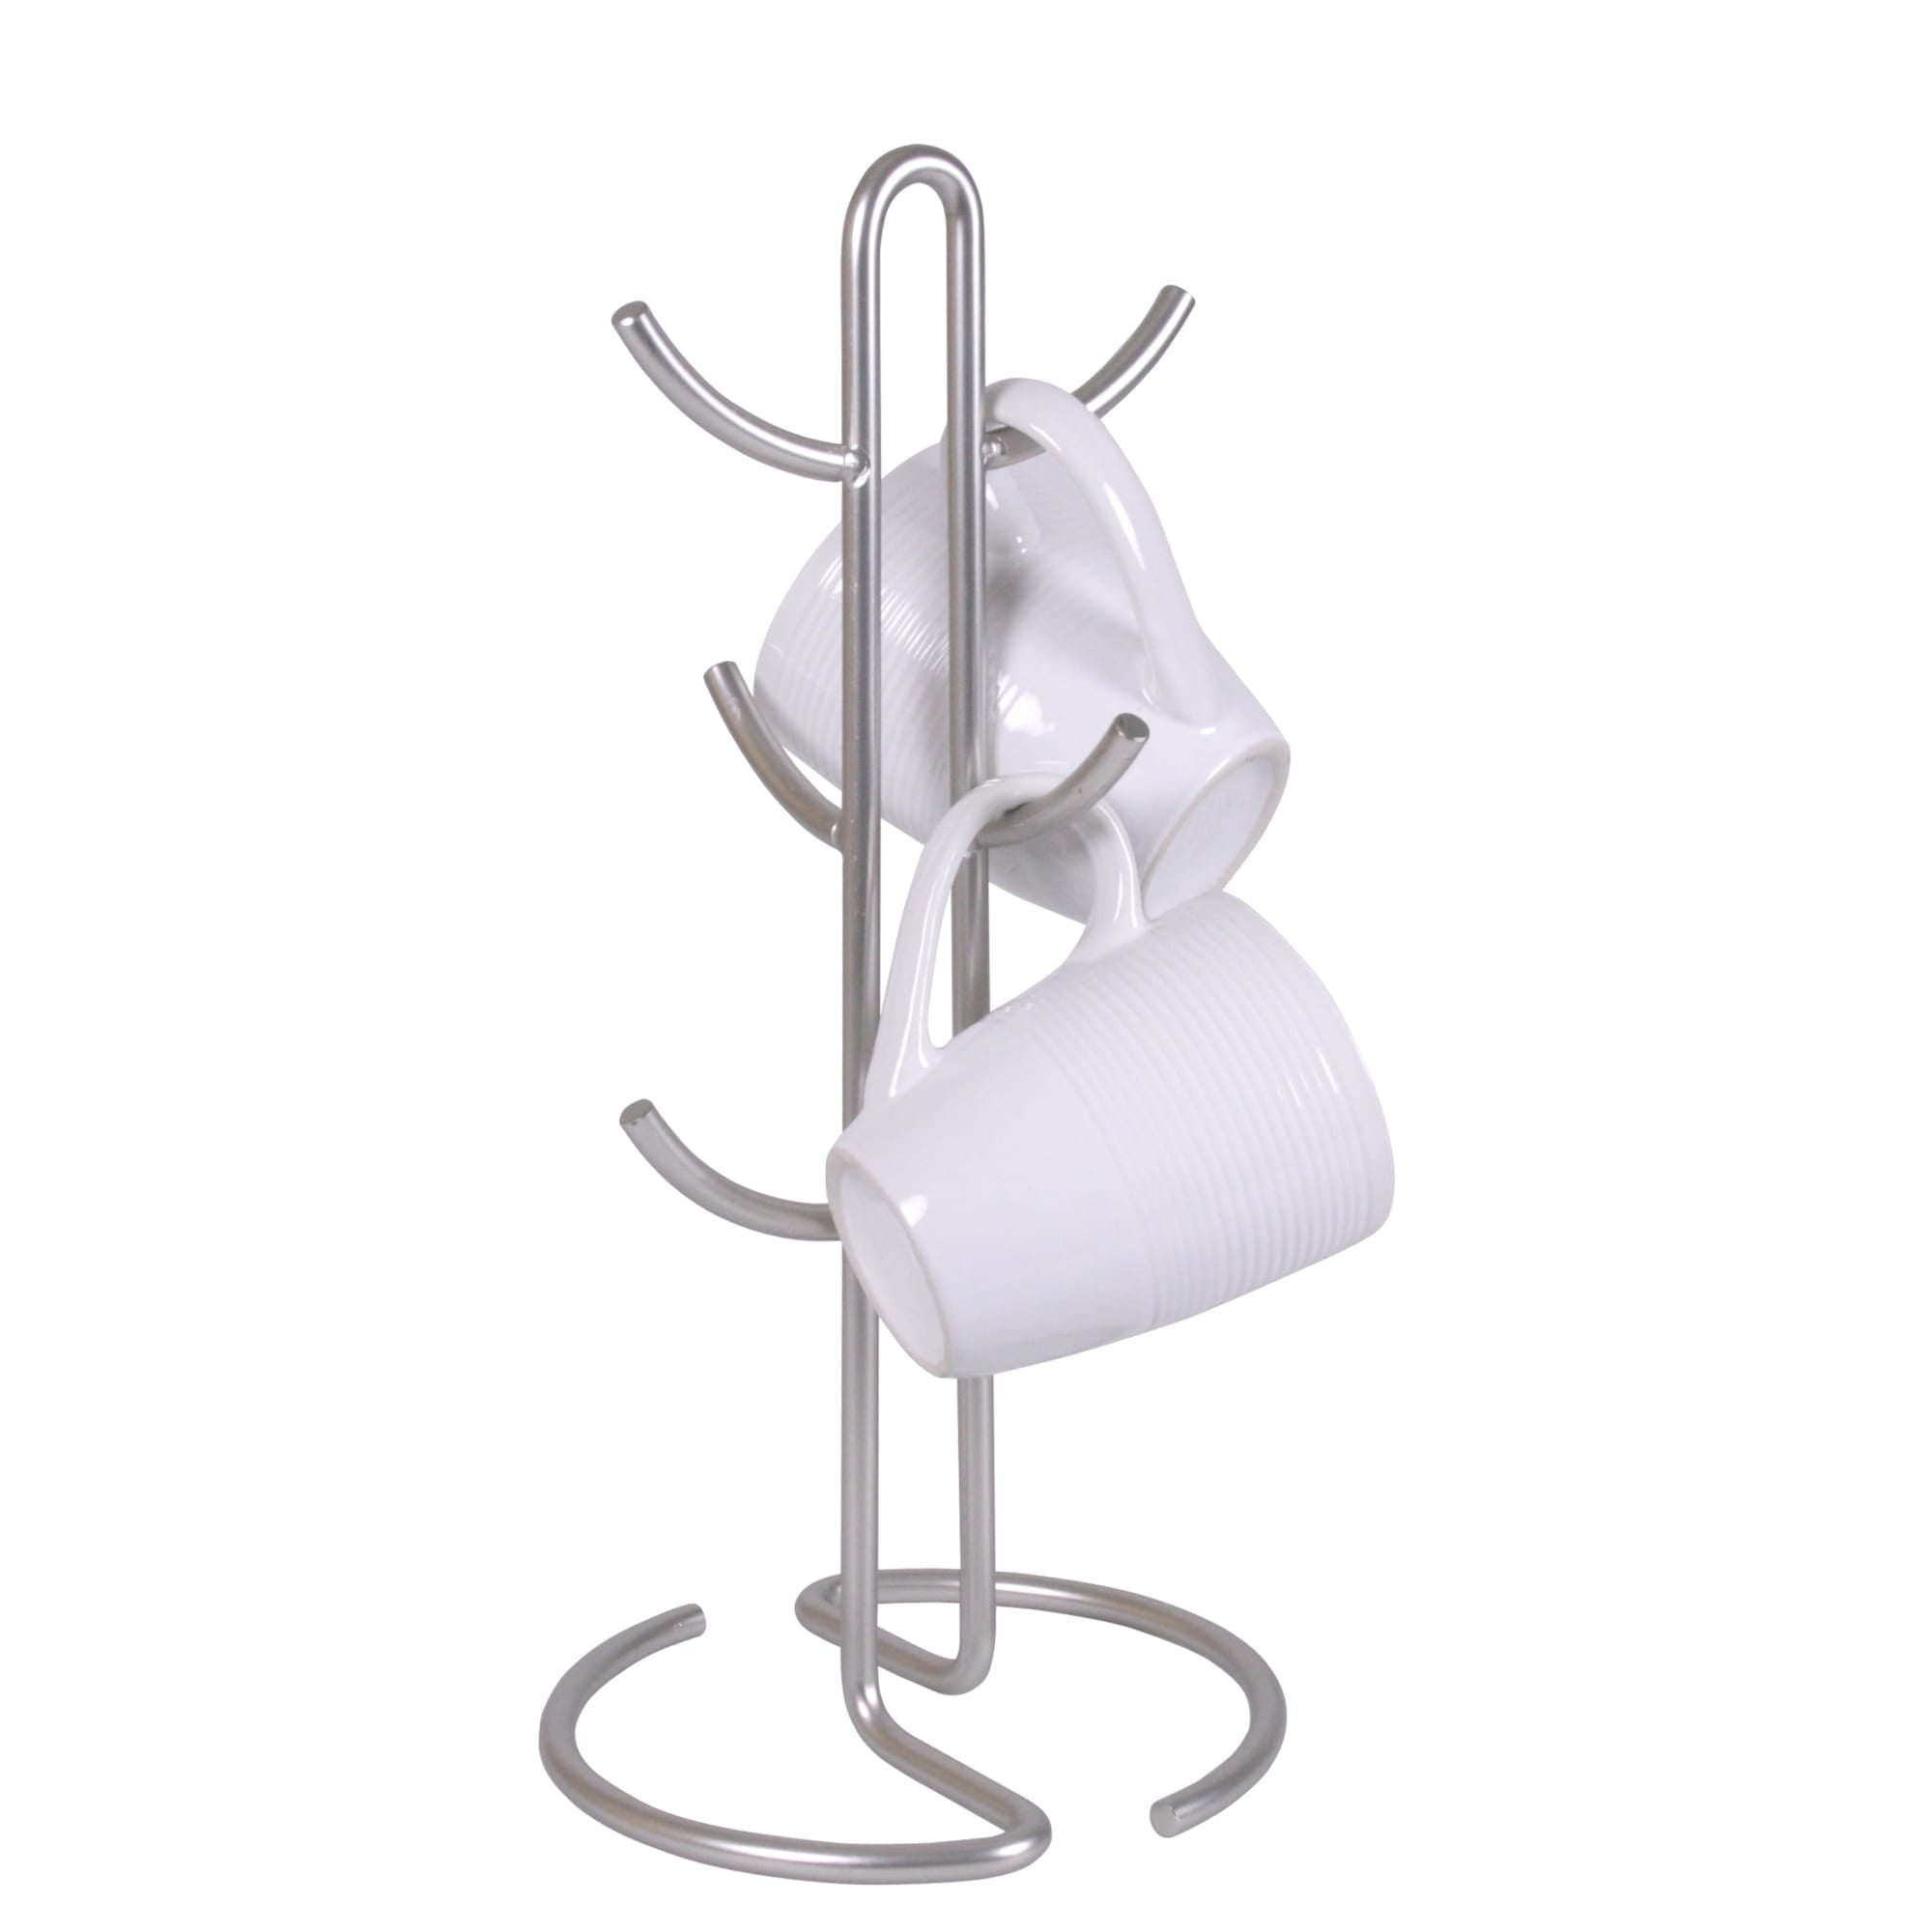 Michael Graves Design Simplicity 6 Hook Steel Mug Tree, Satin Nickel